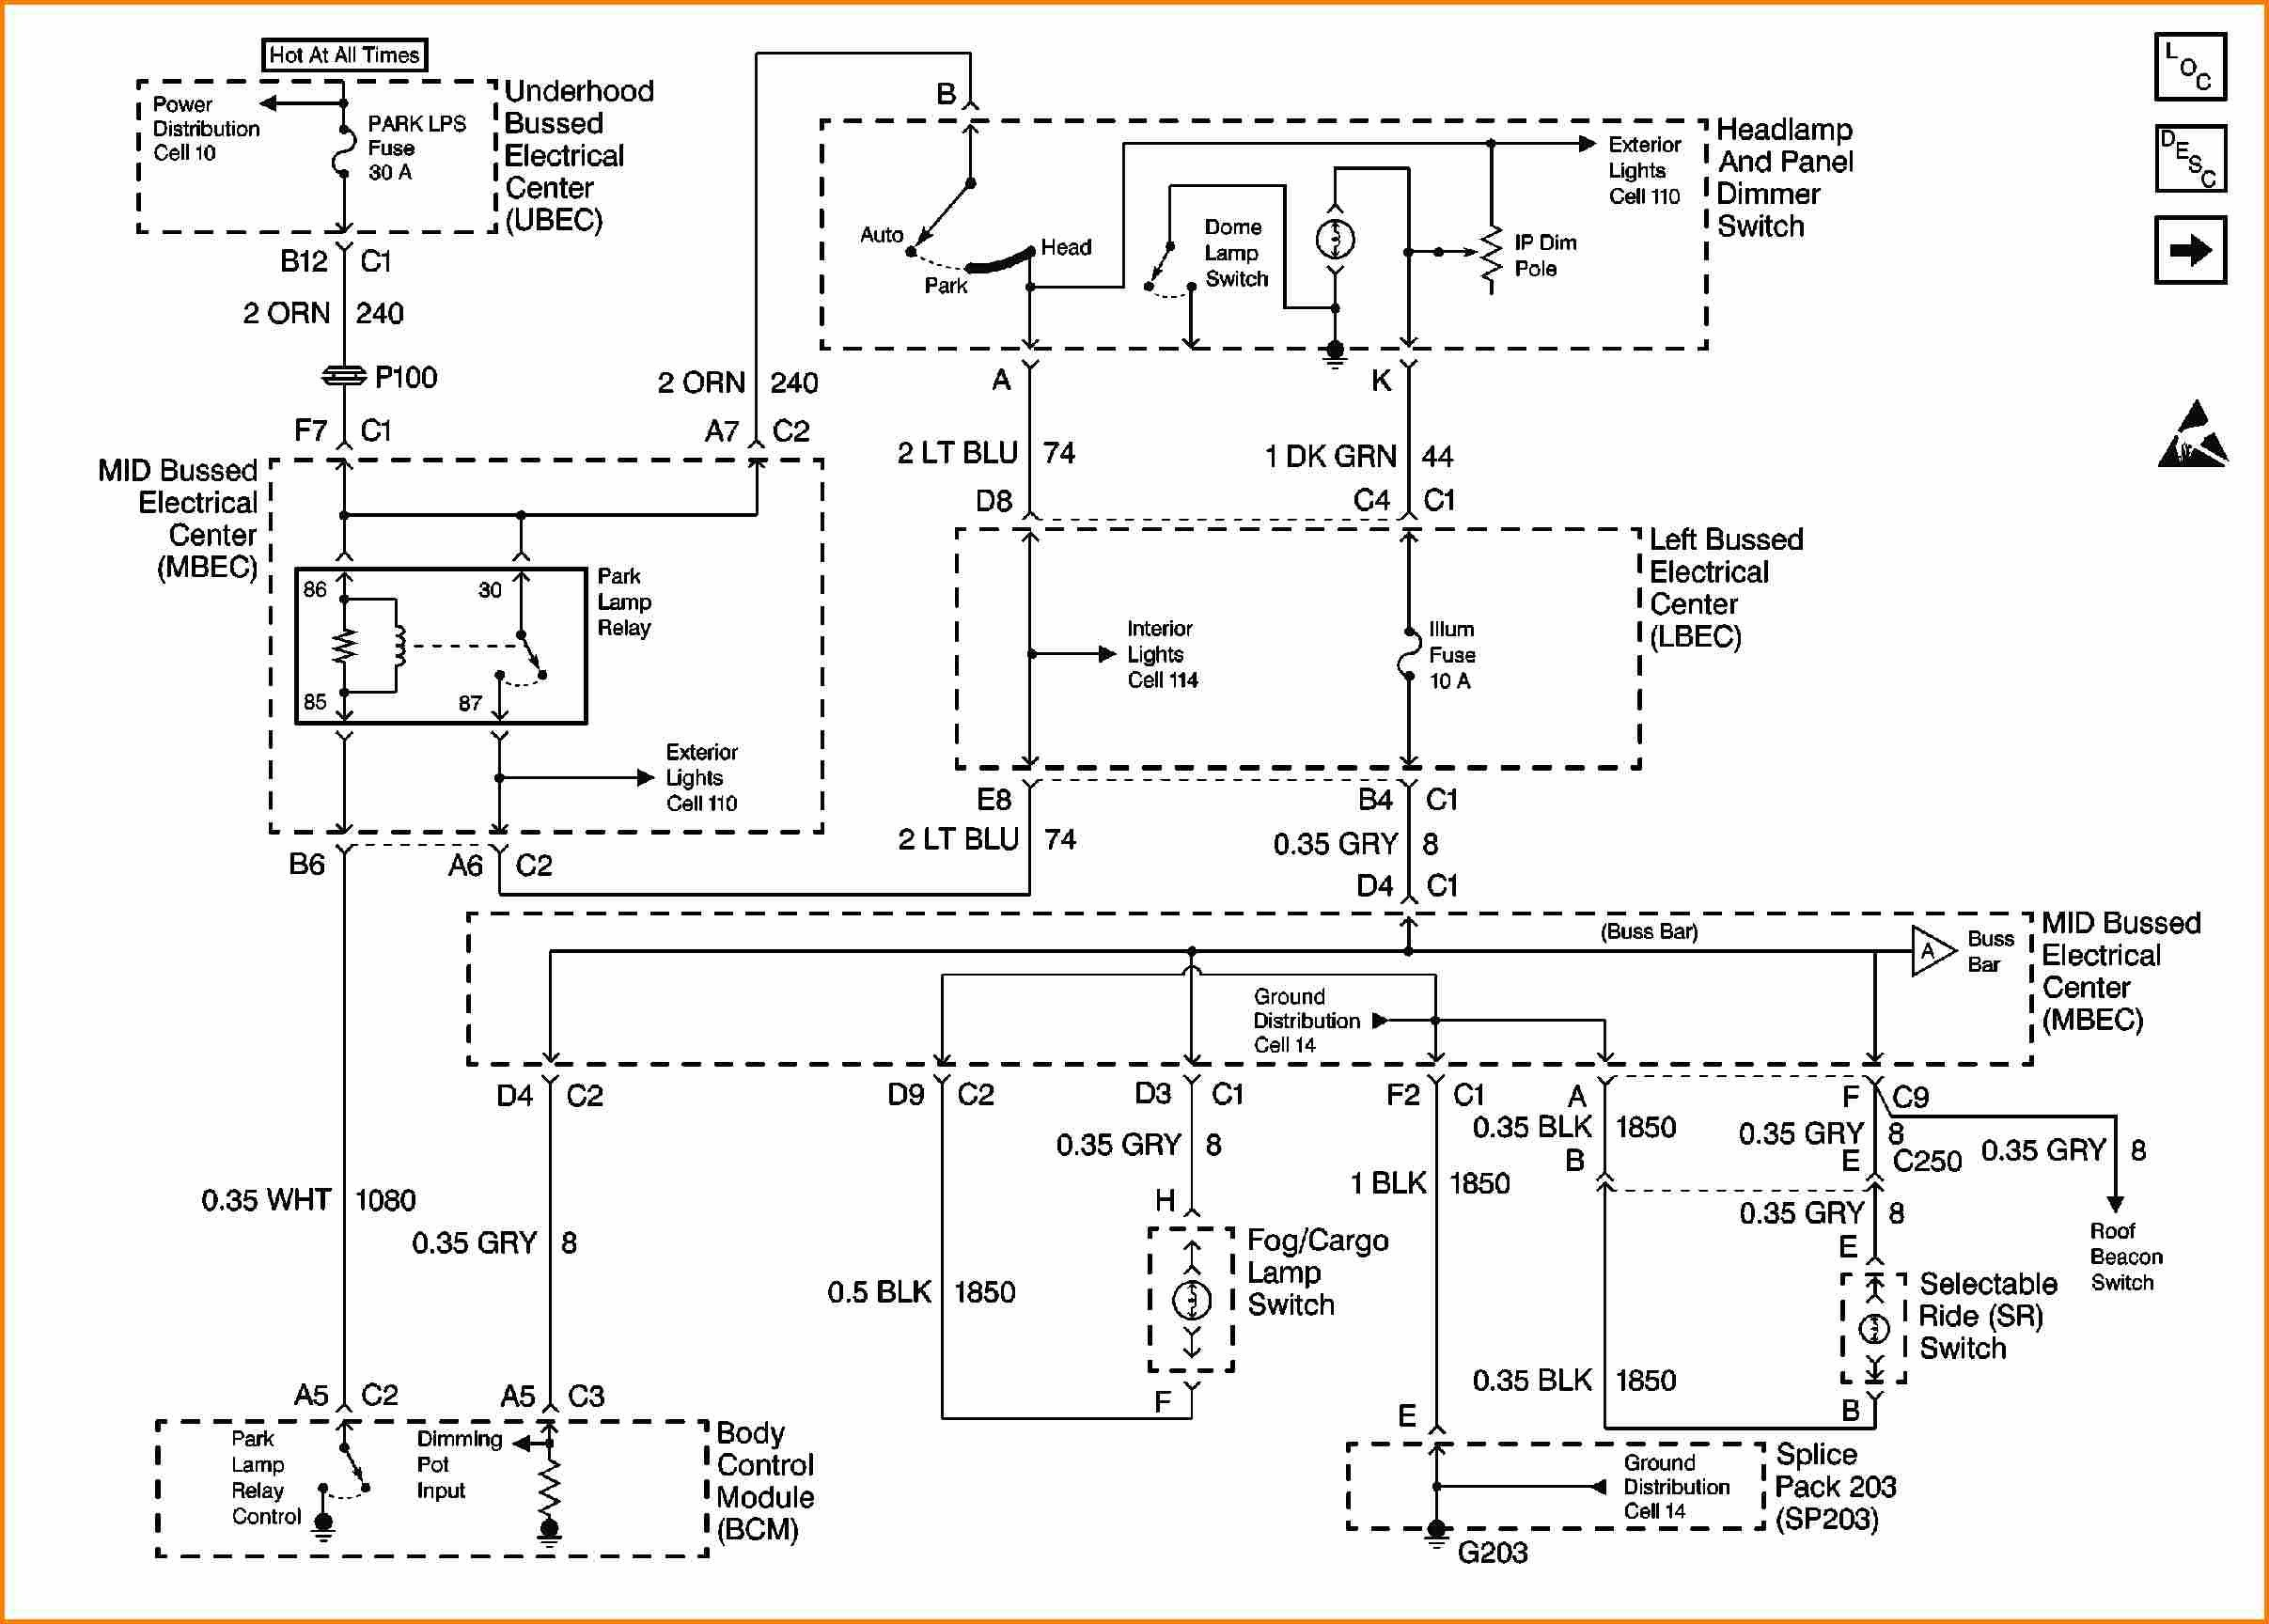 Headlight Wiring Diagram For 2005 Chevy Impala - Case 580k Wiring  Schematics - audi-a3.yenpancane.jeanjaures37.fr | 2005 Impala Headlight Wiring Diagram |  | Wiring Diagram Resource